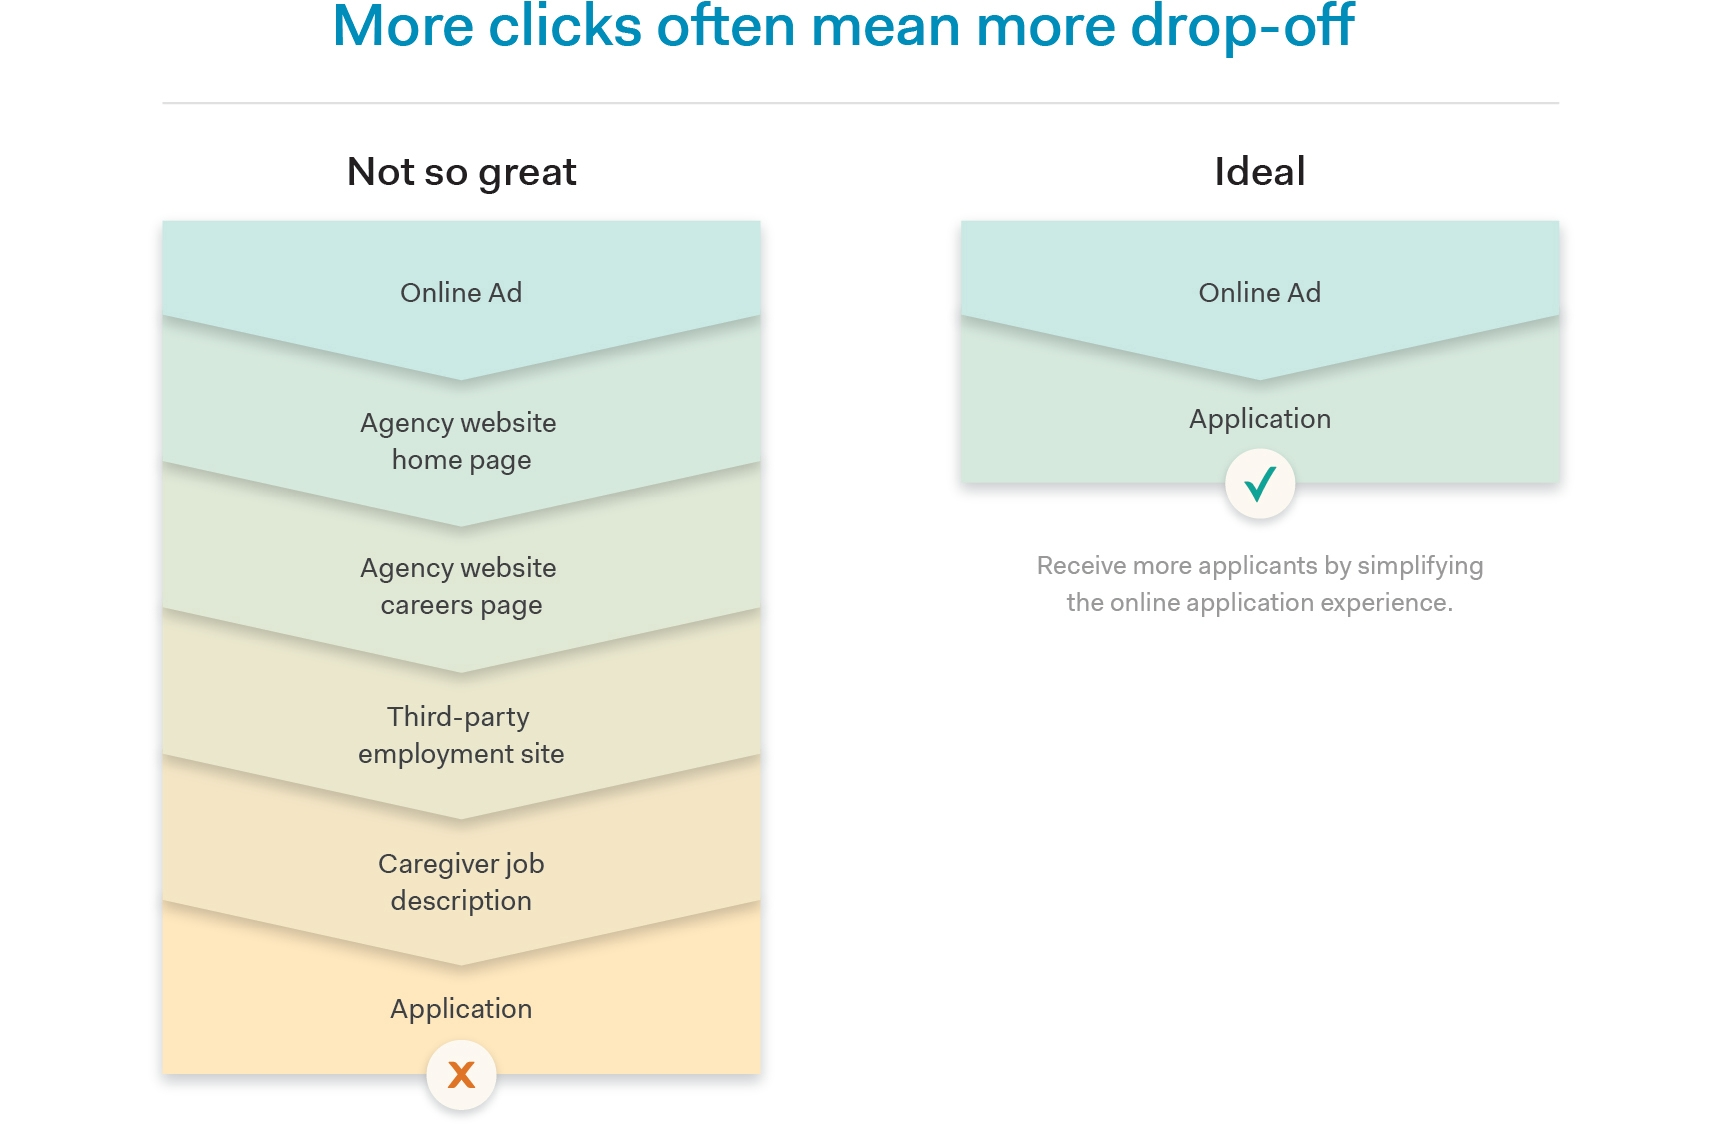 More clicks from ad to application often mean more drop off when recruiting caregivers online